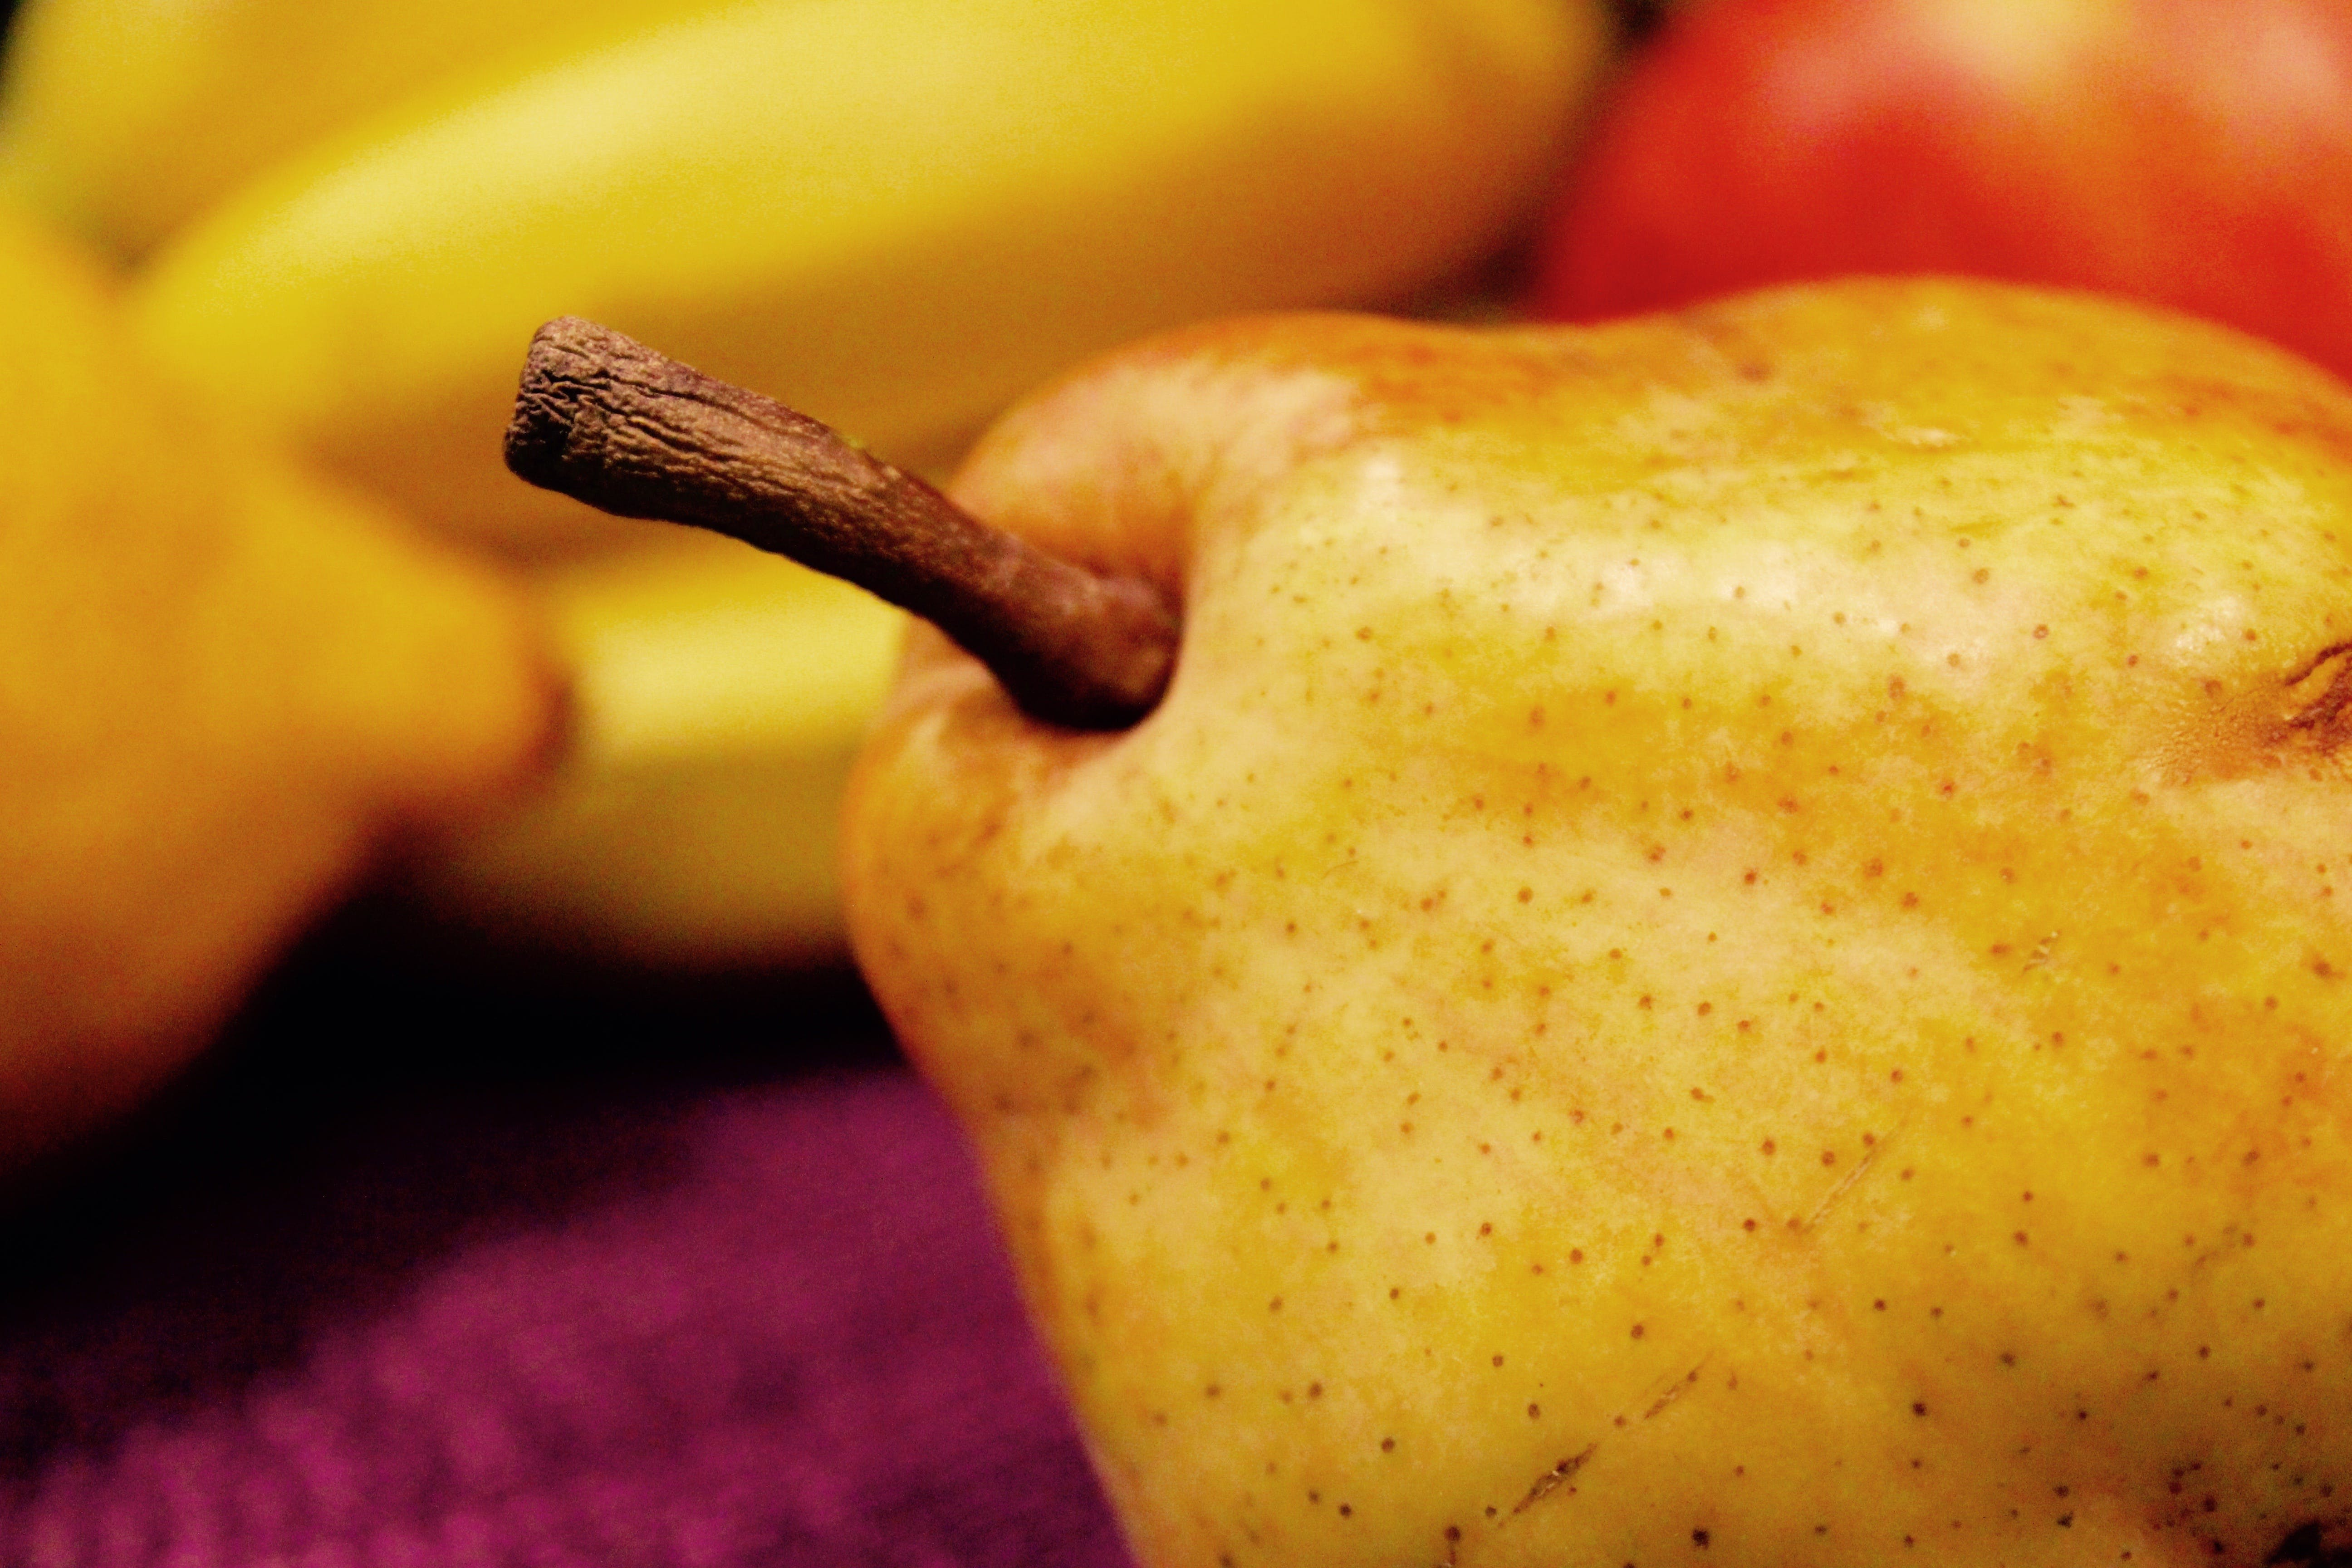 Free stock photo of fruit, pear